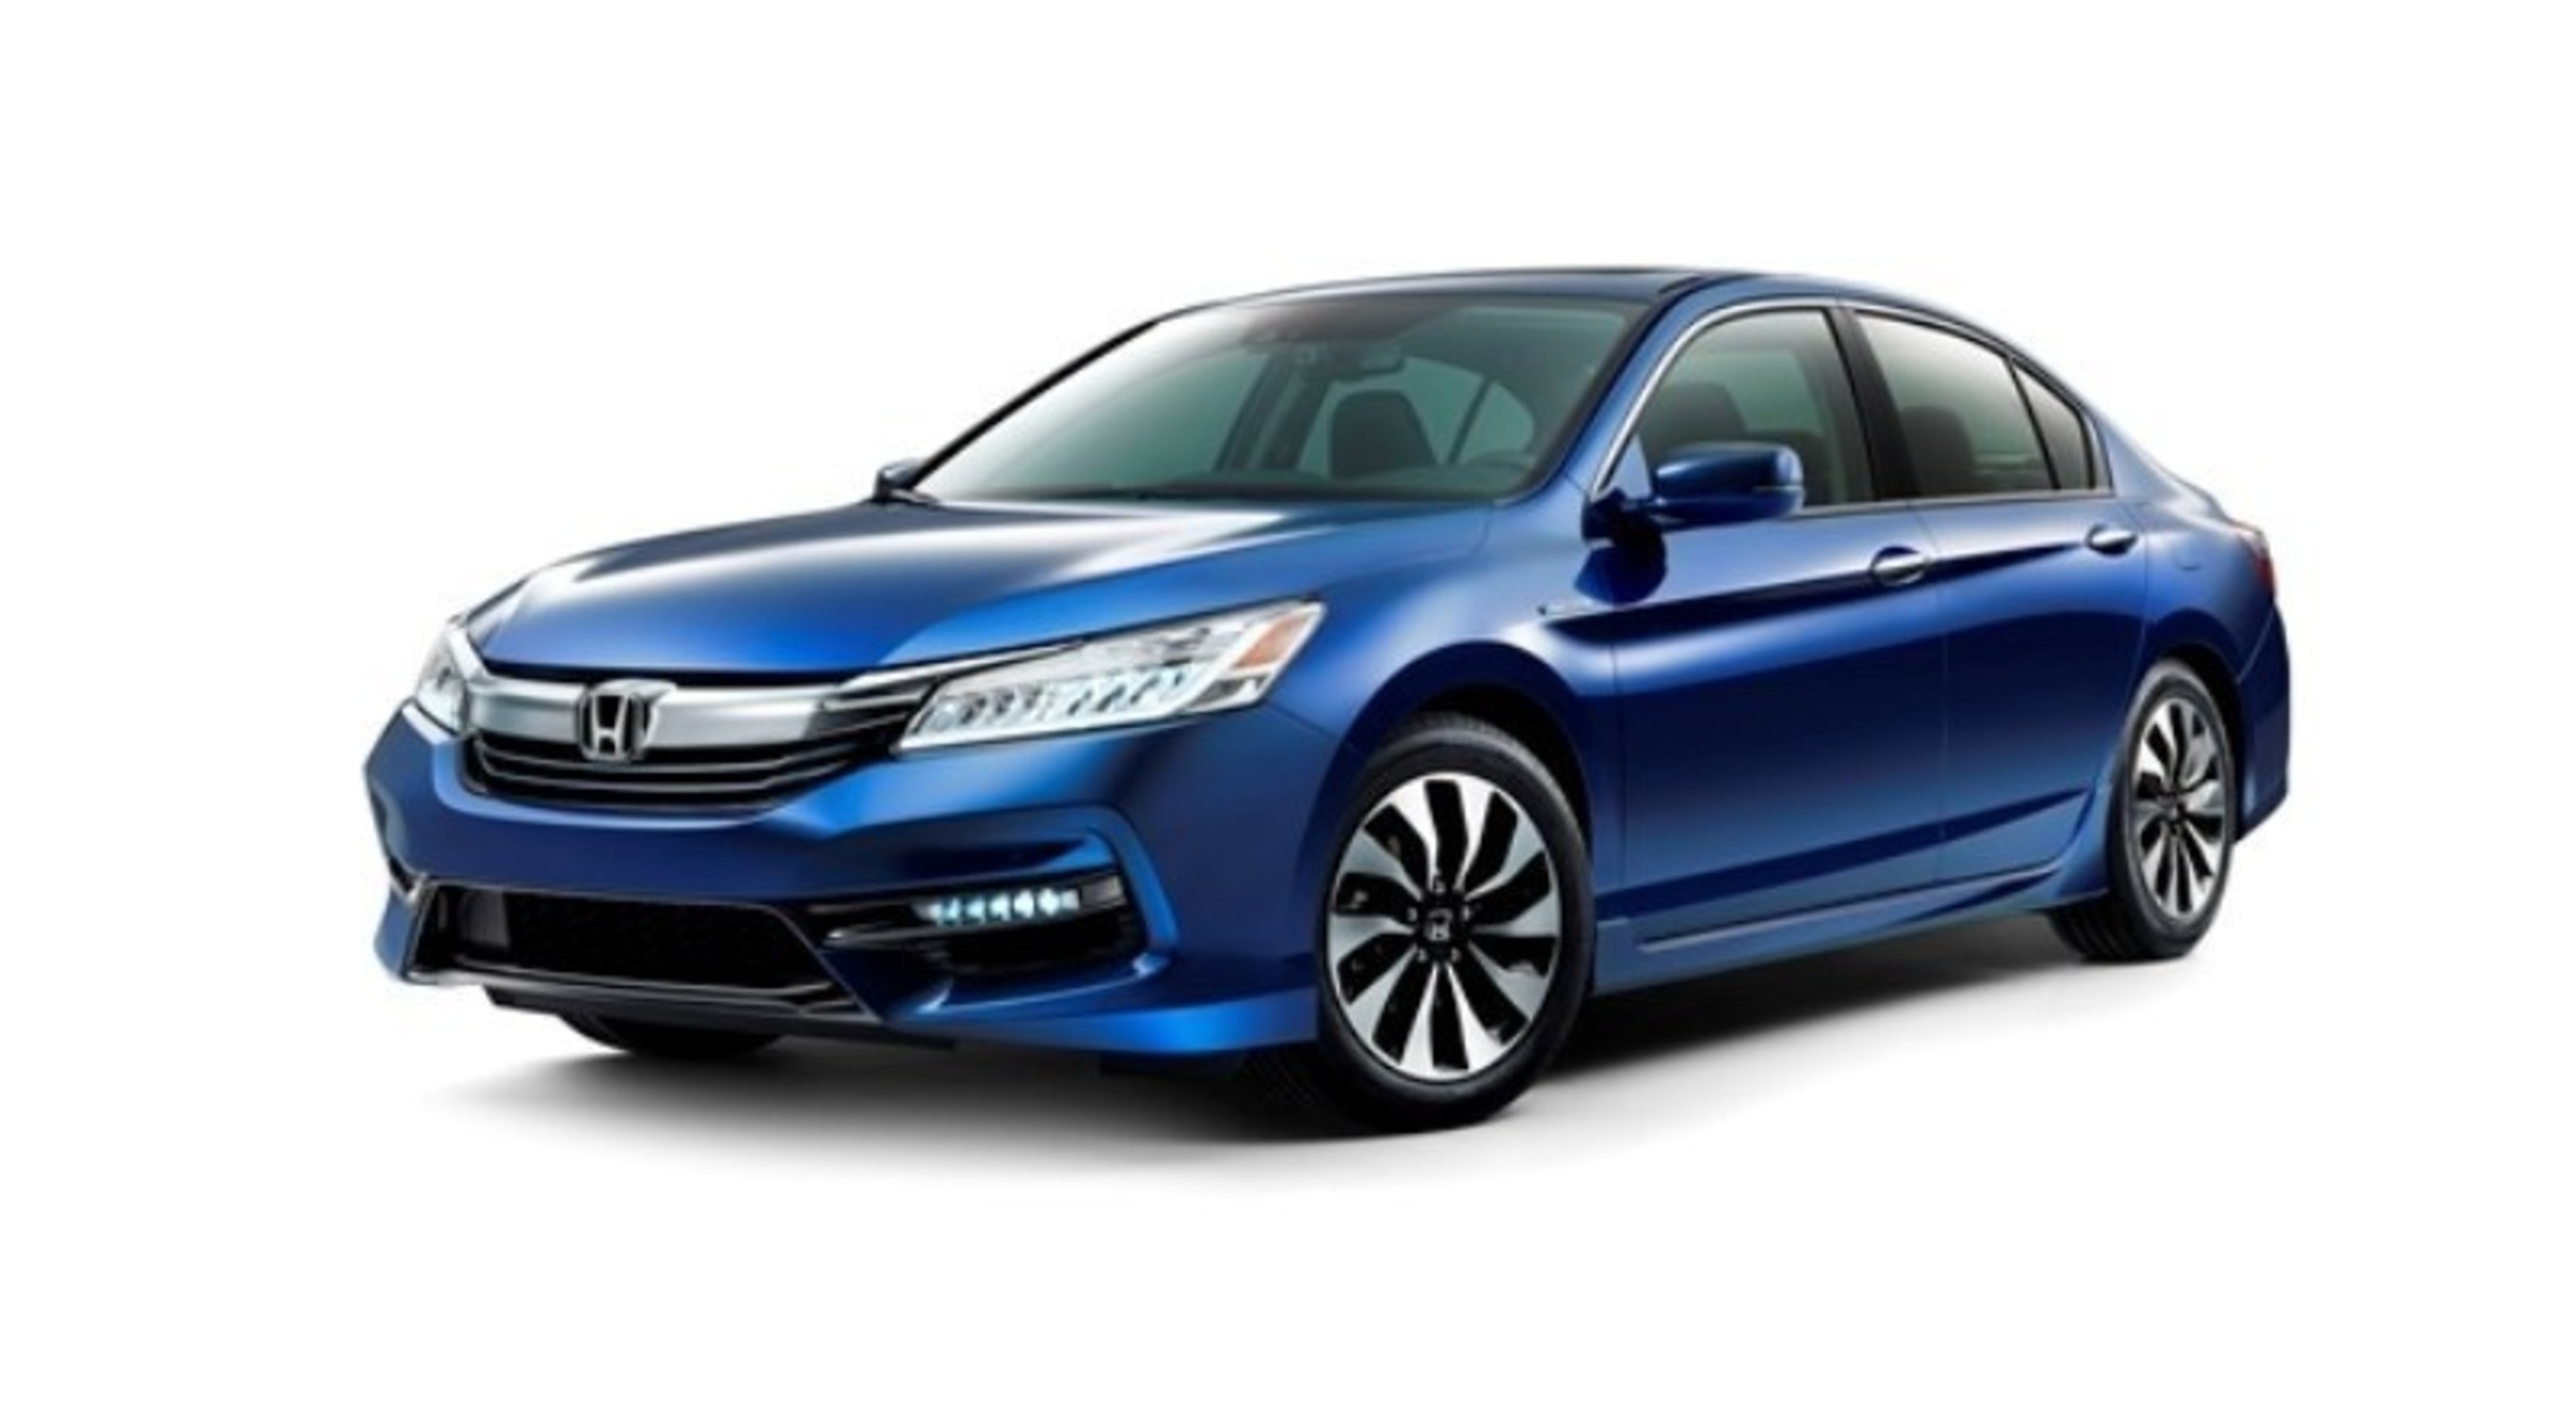 The Best Gets Better:  More Powerful, Fuel Efficient and Technologically Advanced 2017 Accord Hybrid Launching this Spring